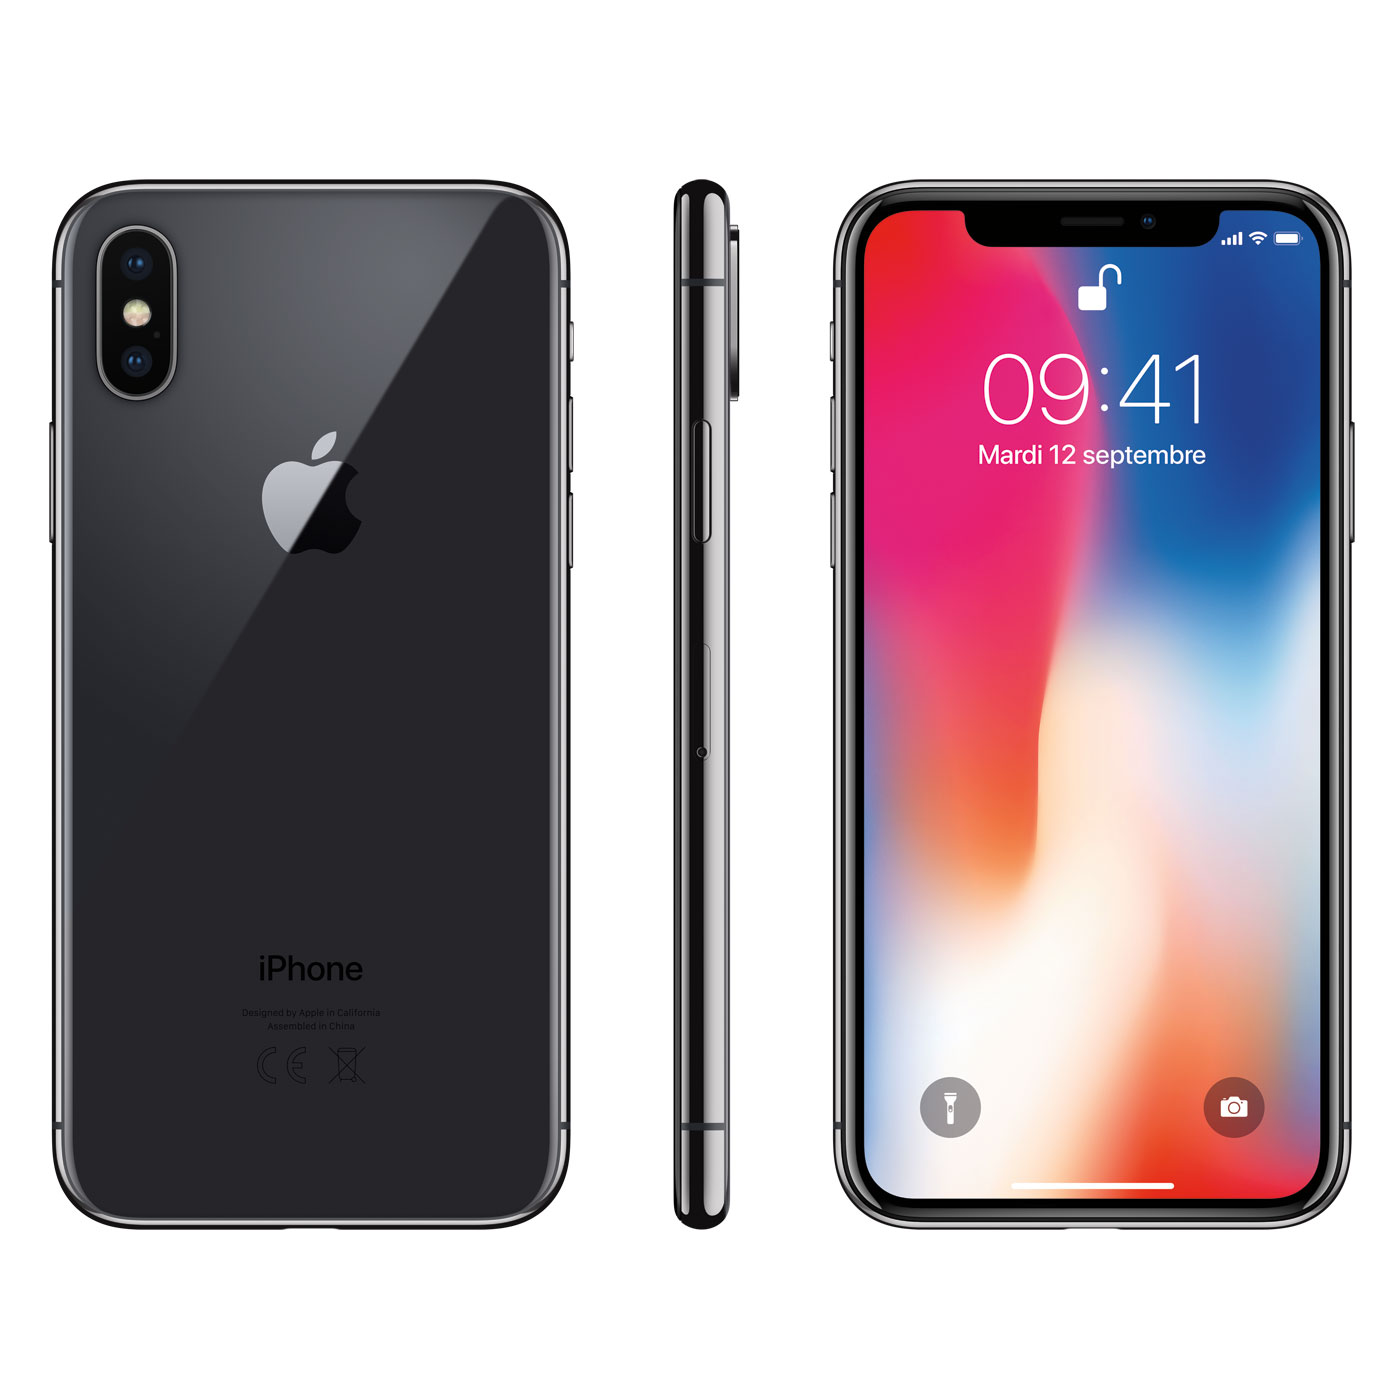 apple iphone x 256 go gris sid ral mobile smartphone apple sur. Black Bedroom Furniture Sets. Home Design Ideas